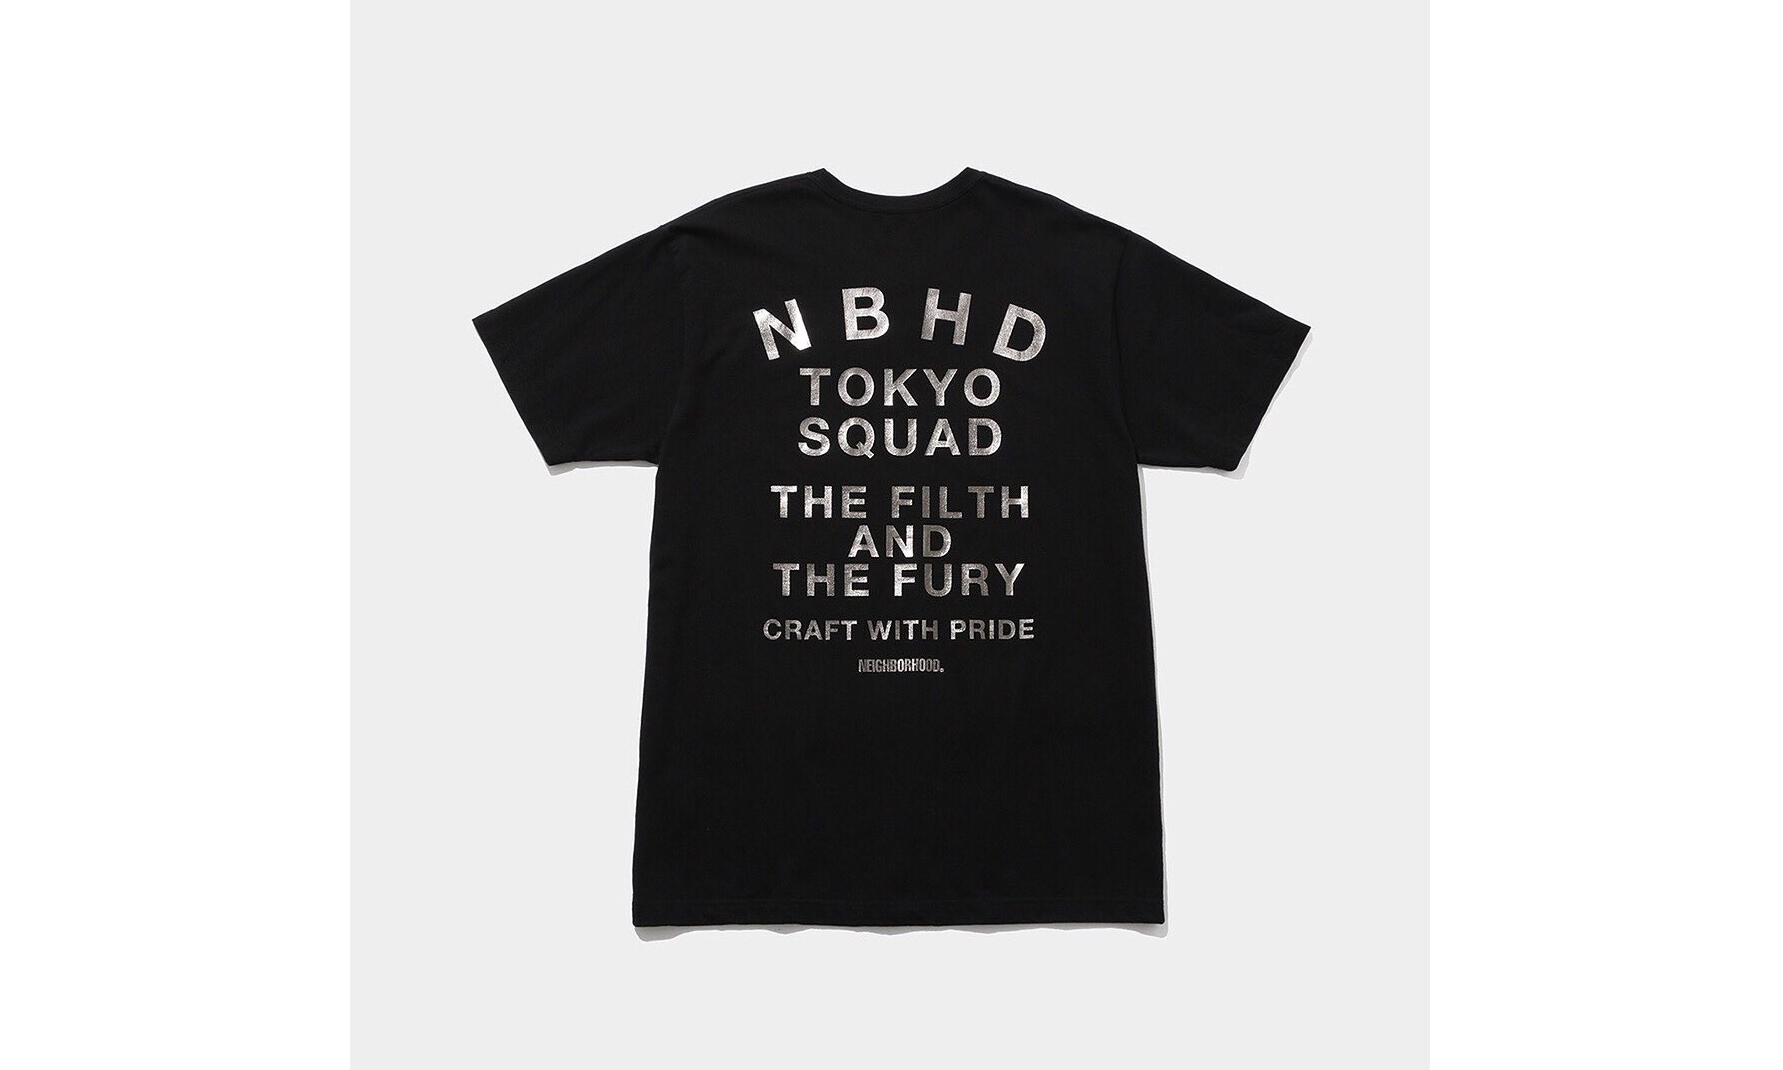 NEIGHBORHOOD x The Conveni T 恤系列正式发布